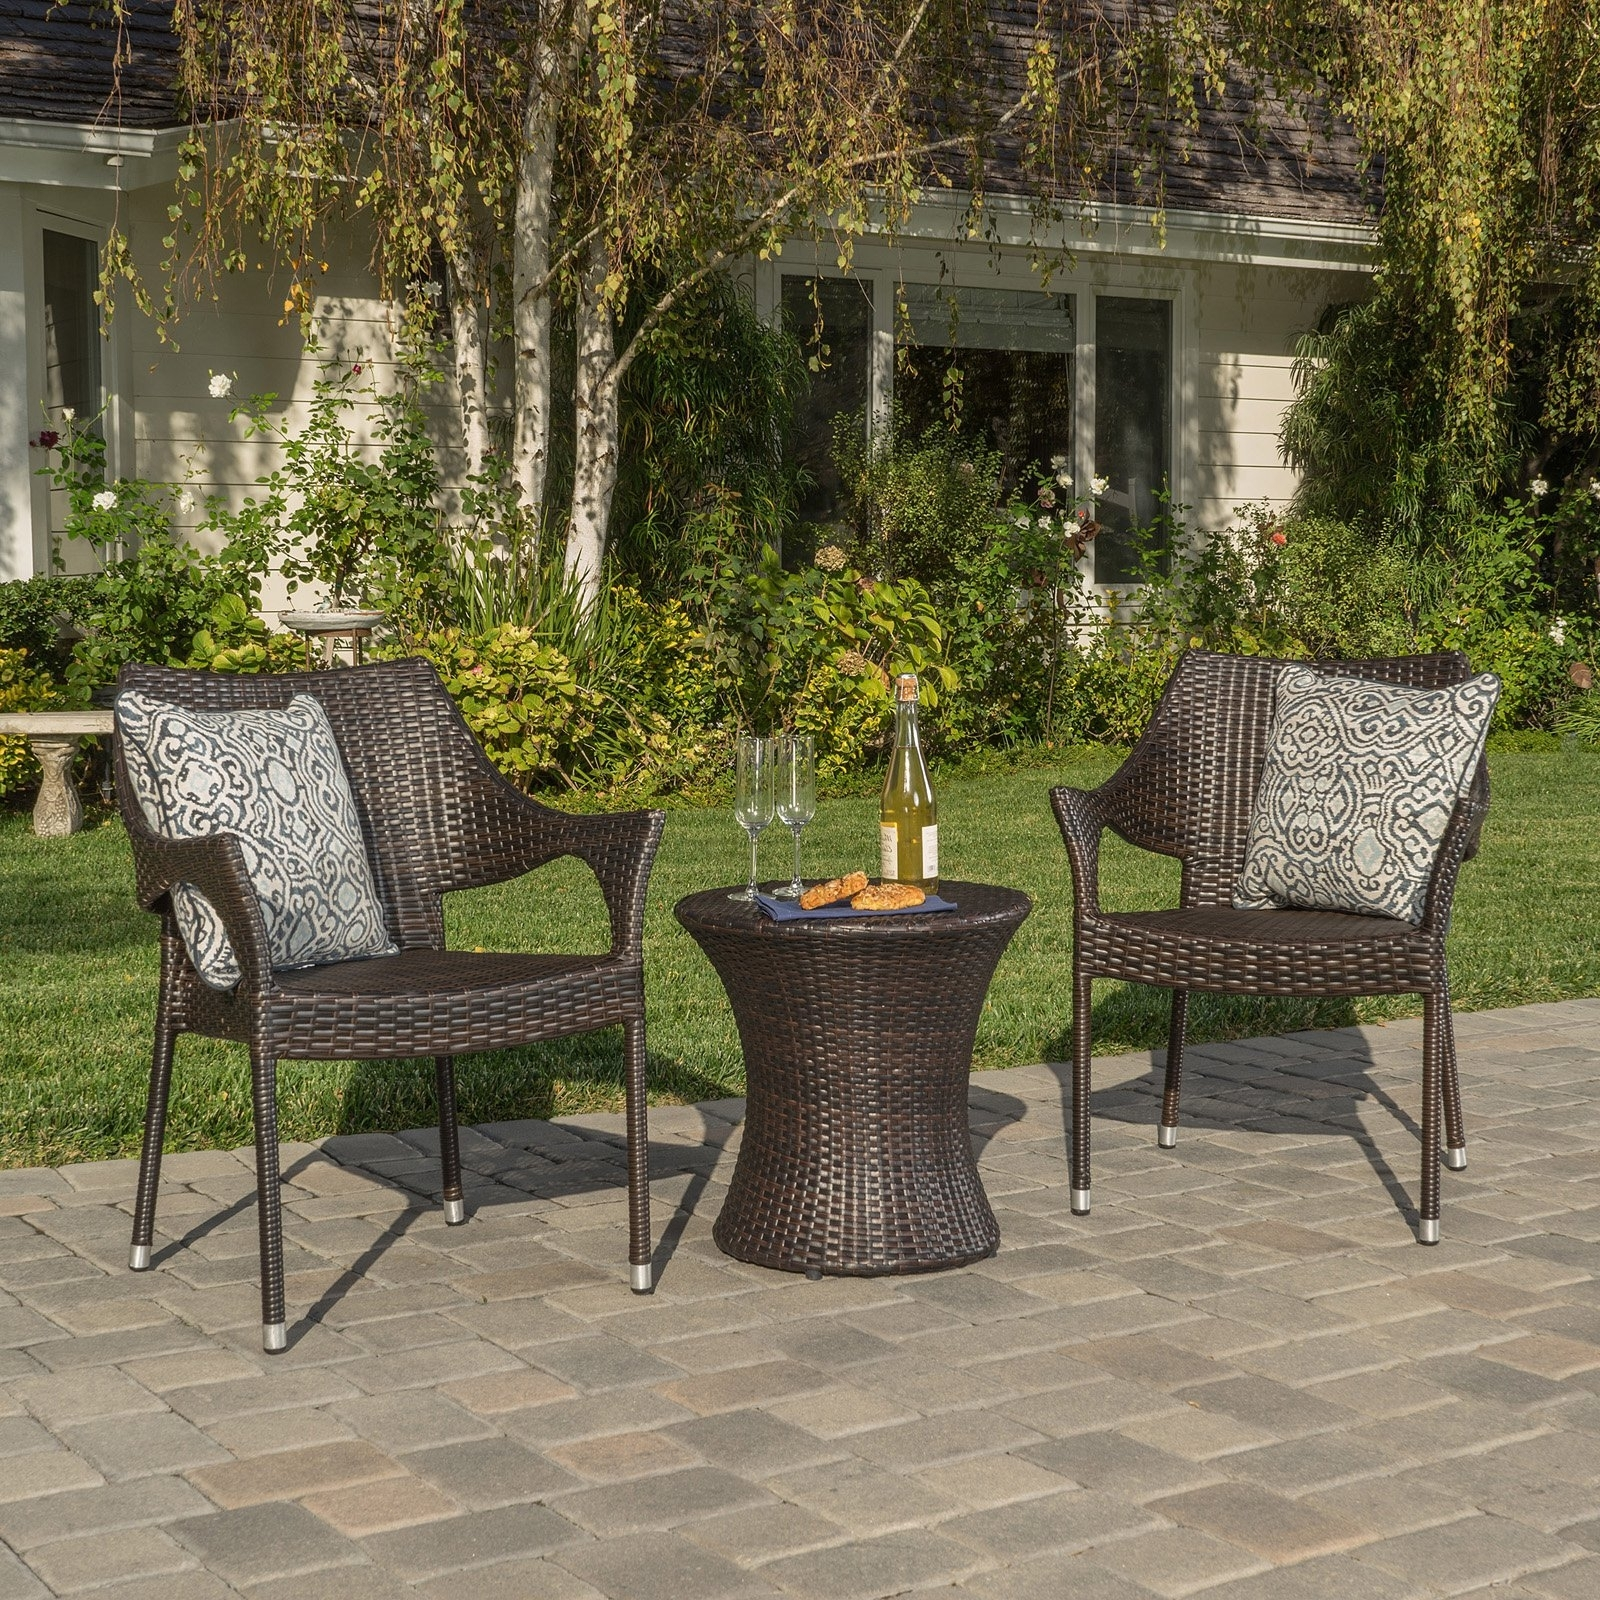 46 Patio Conversation Sets Under 300, Patio Conversation Set 4 Piece Pertaining To 2019 Patio Conversation Sets Under $ (View 6 of 20)